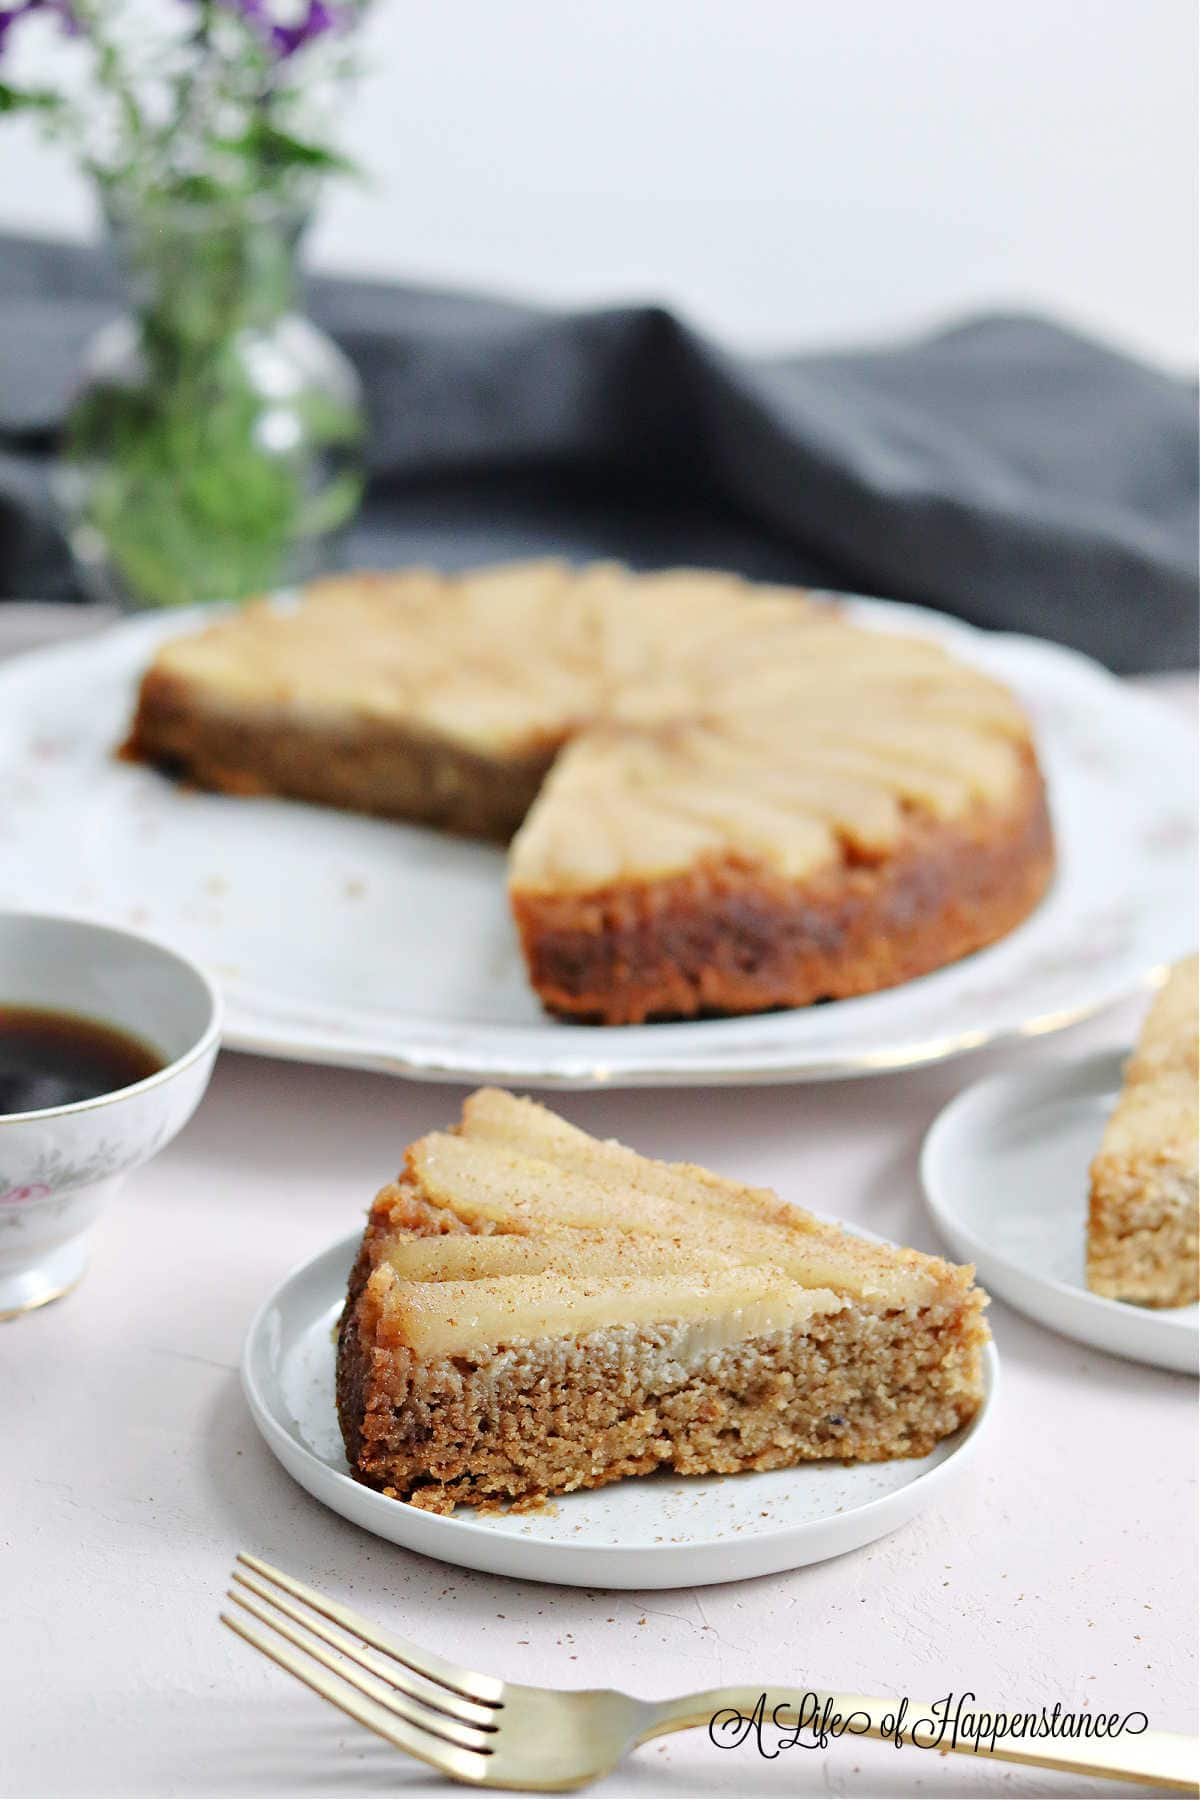 A slice of paleo pear cake on a white plate.